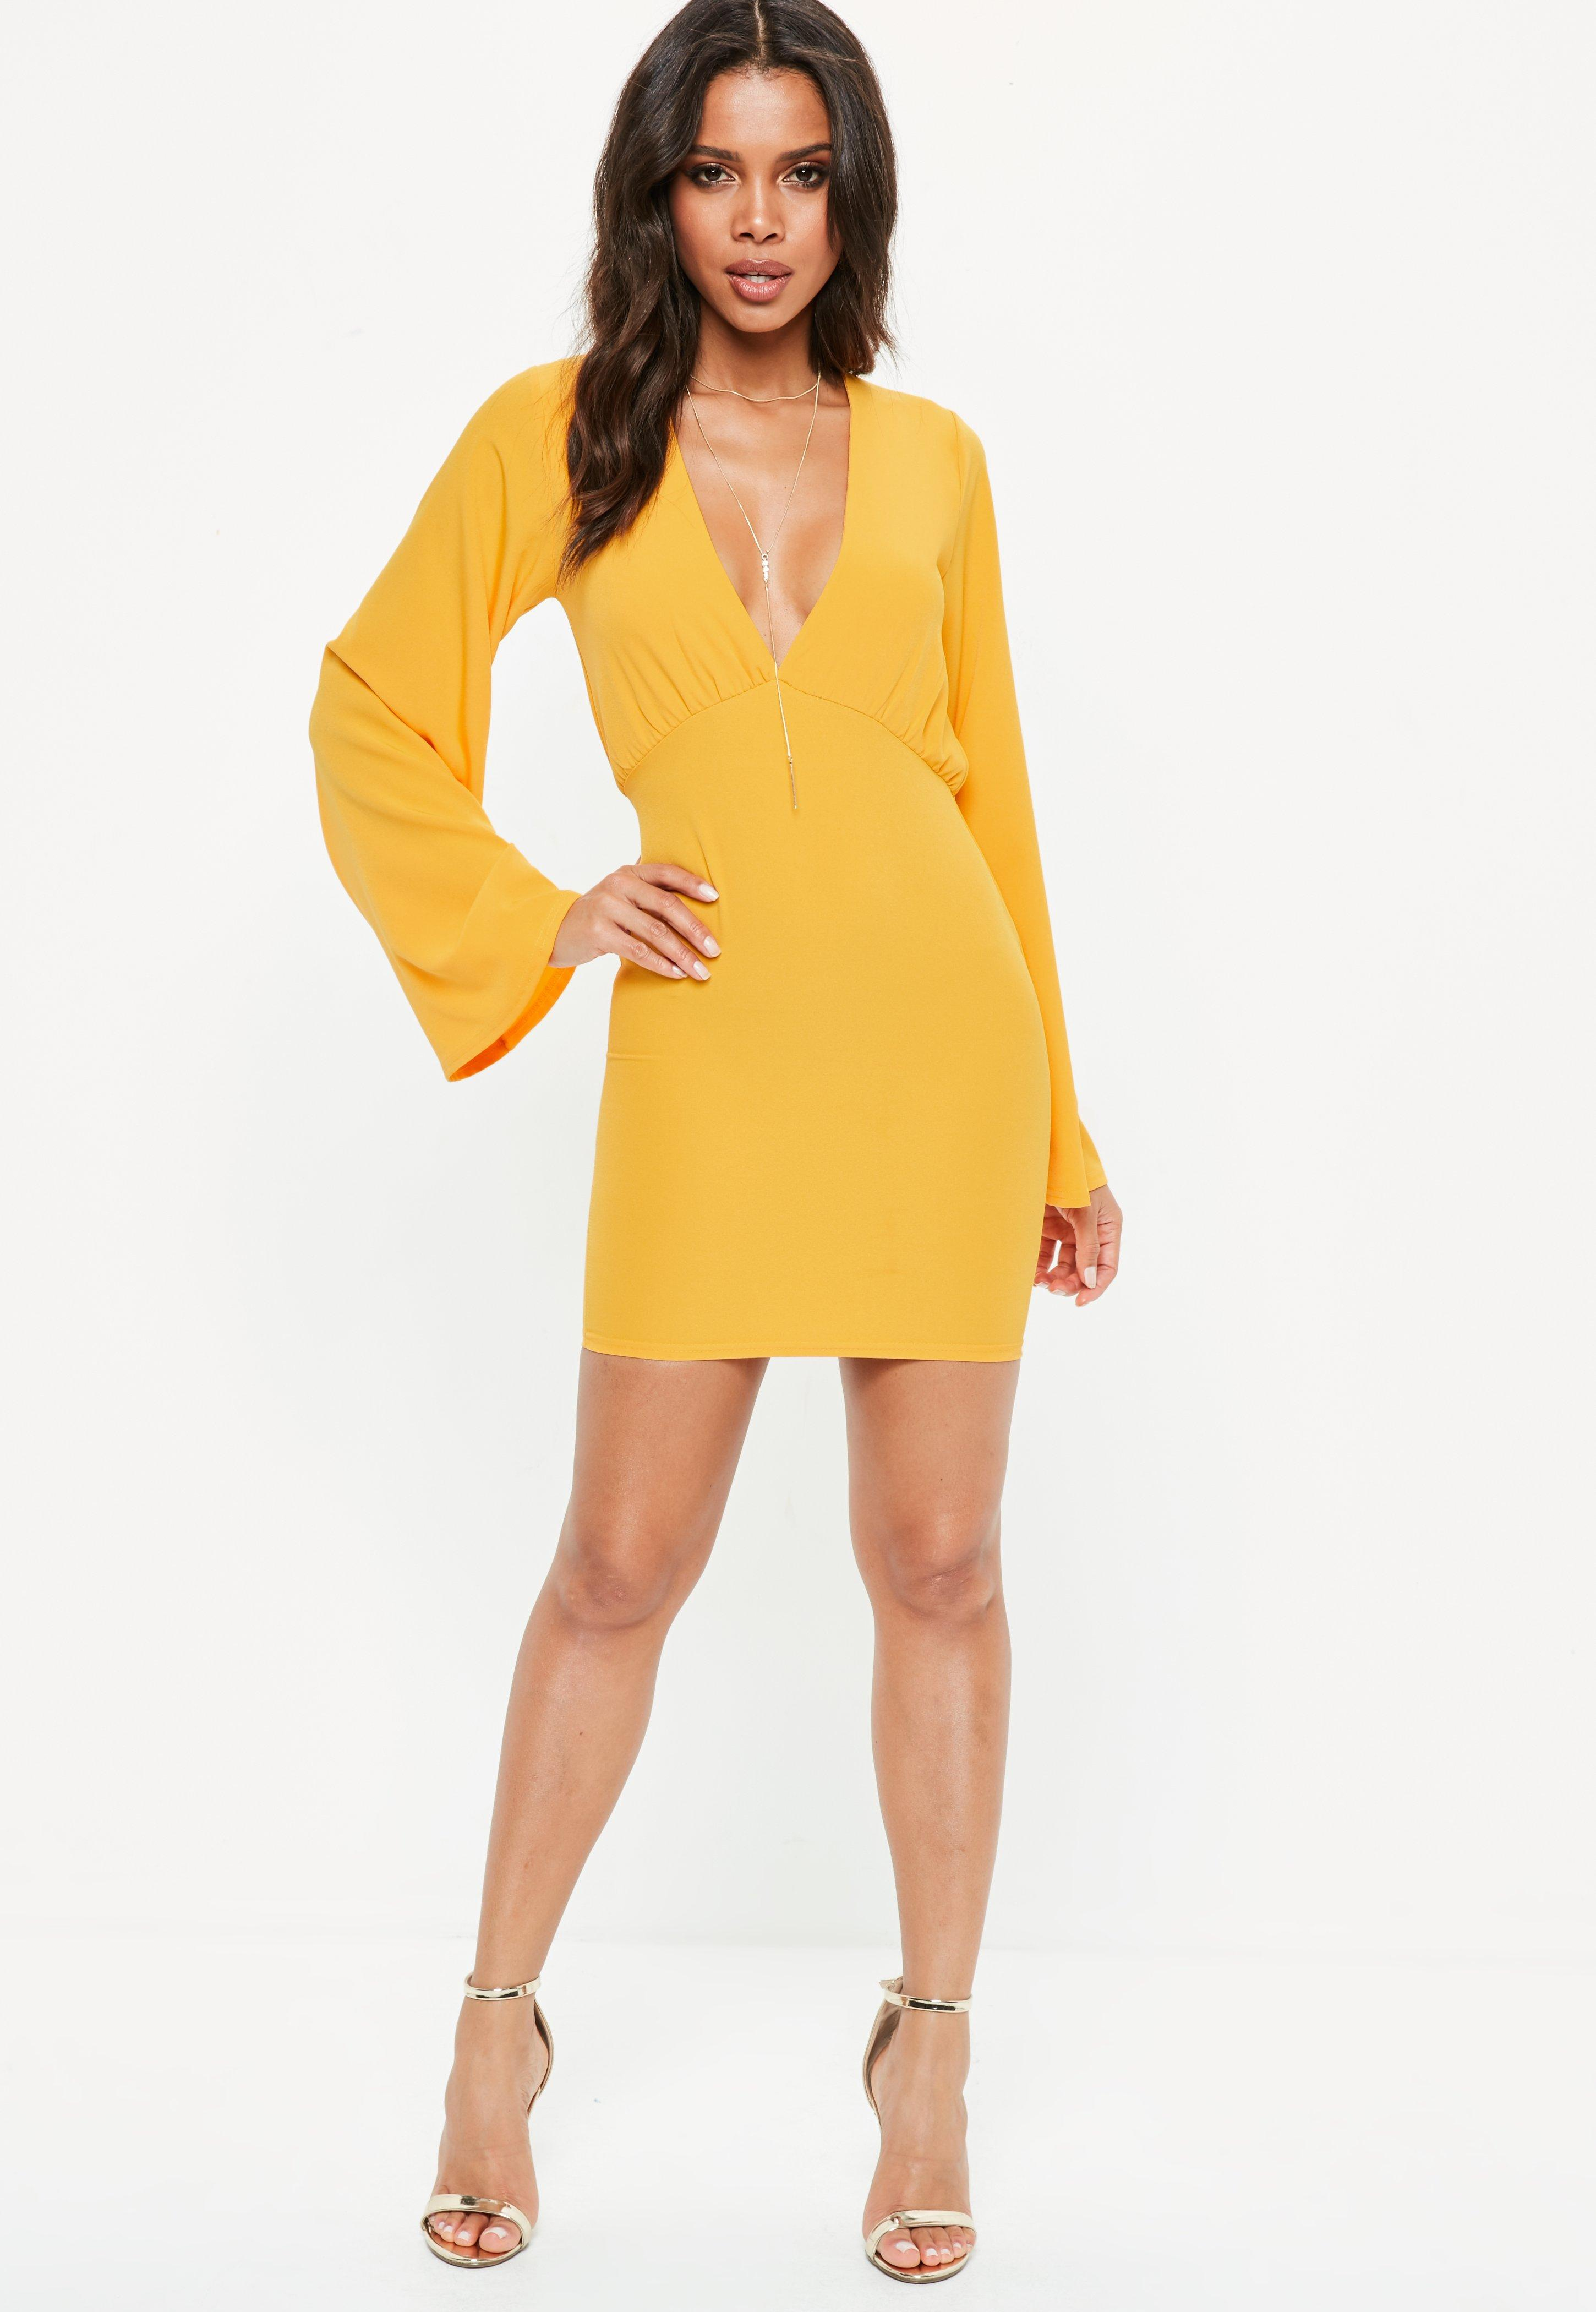 Yellow Dresses - Mustard & Chartreuse Dresses | Missguided